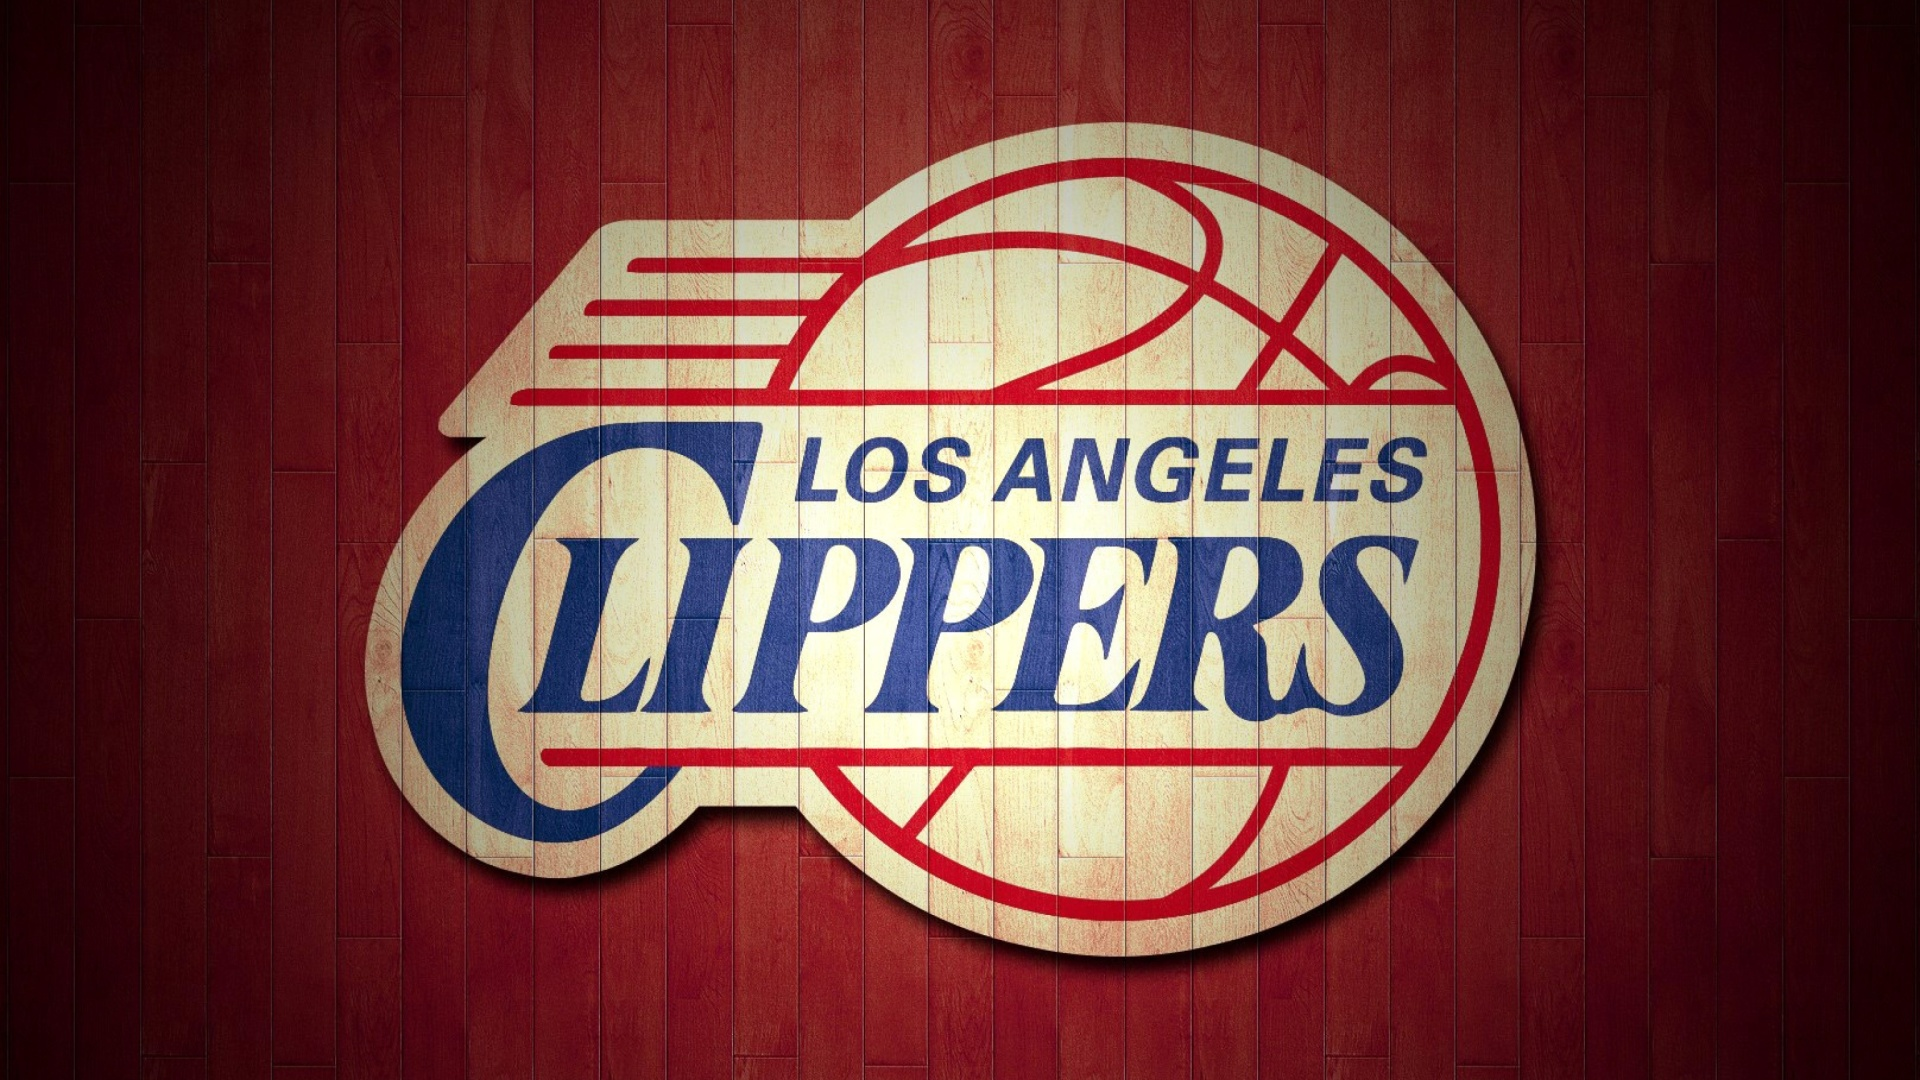 Los Angeles Clippers Wallpaper Picture hd